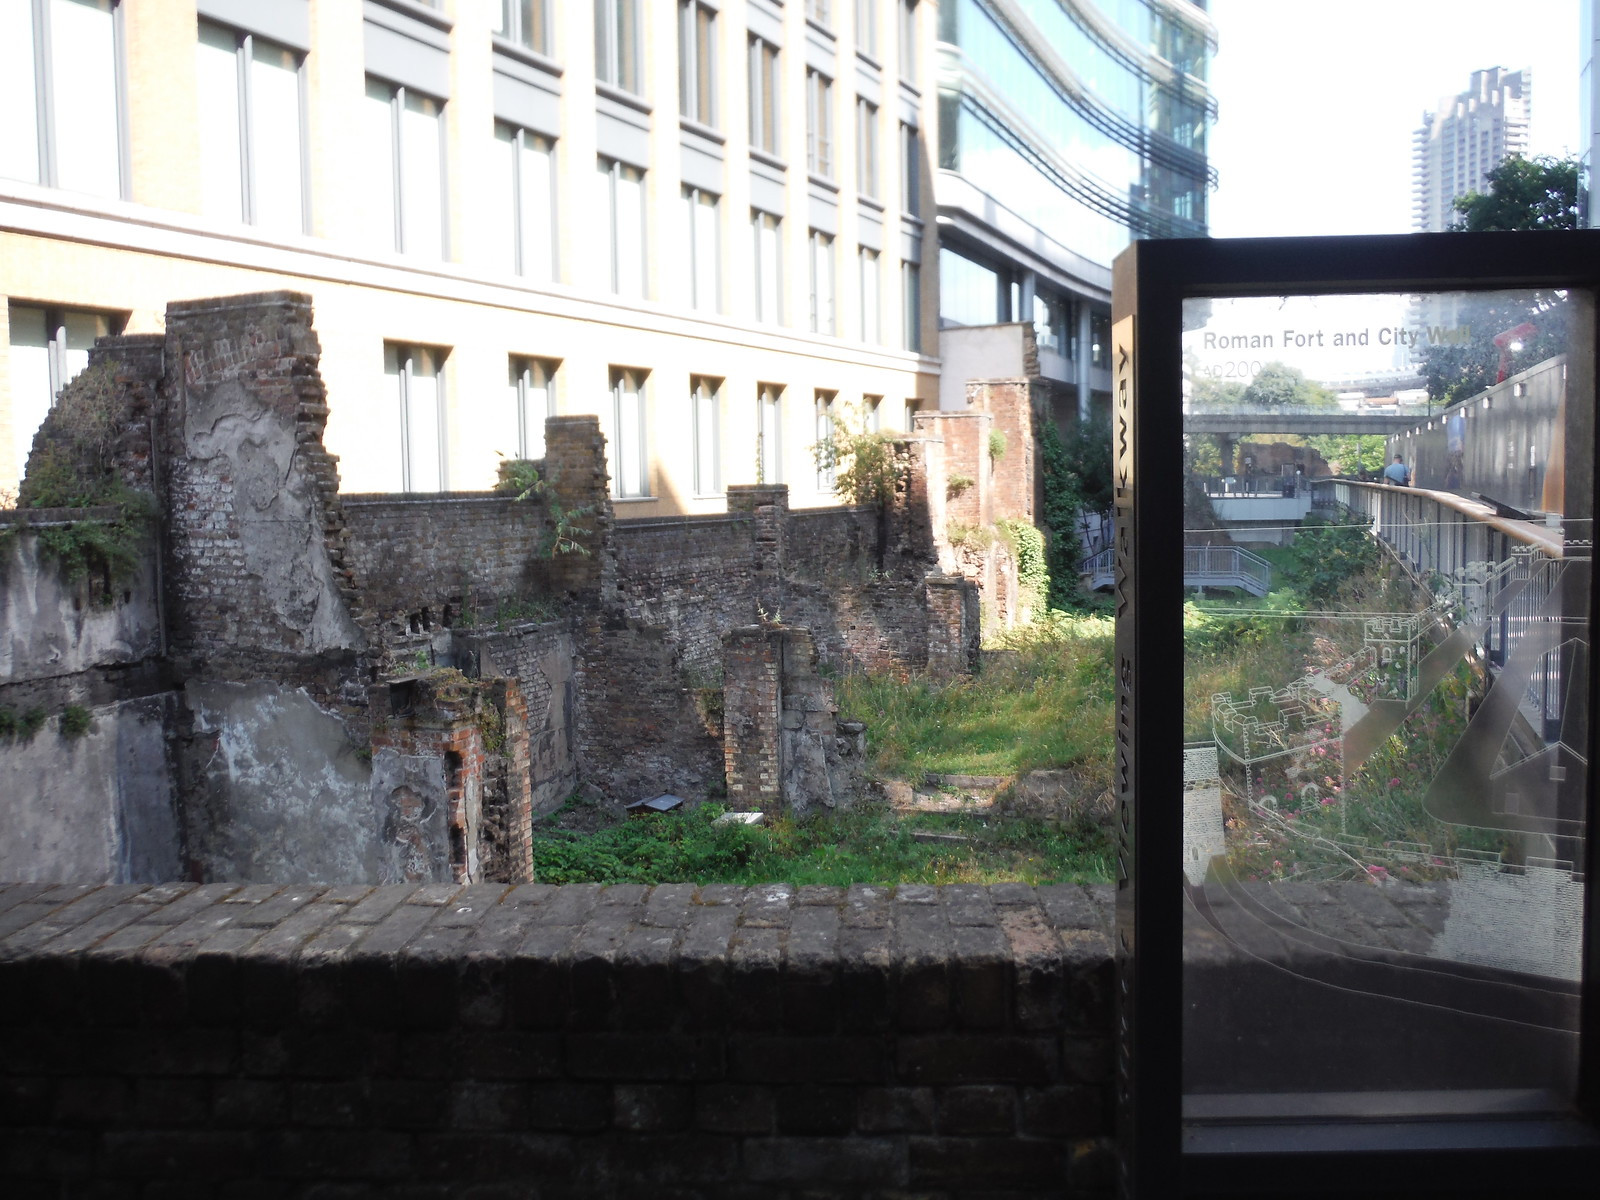 Very large piece of the London Wall, from Noble Street Viewing Walkway SWC Short Walk 47 - The London Wall